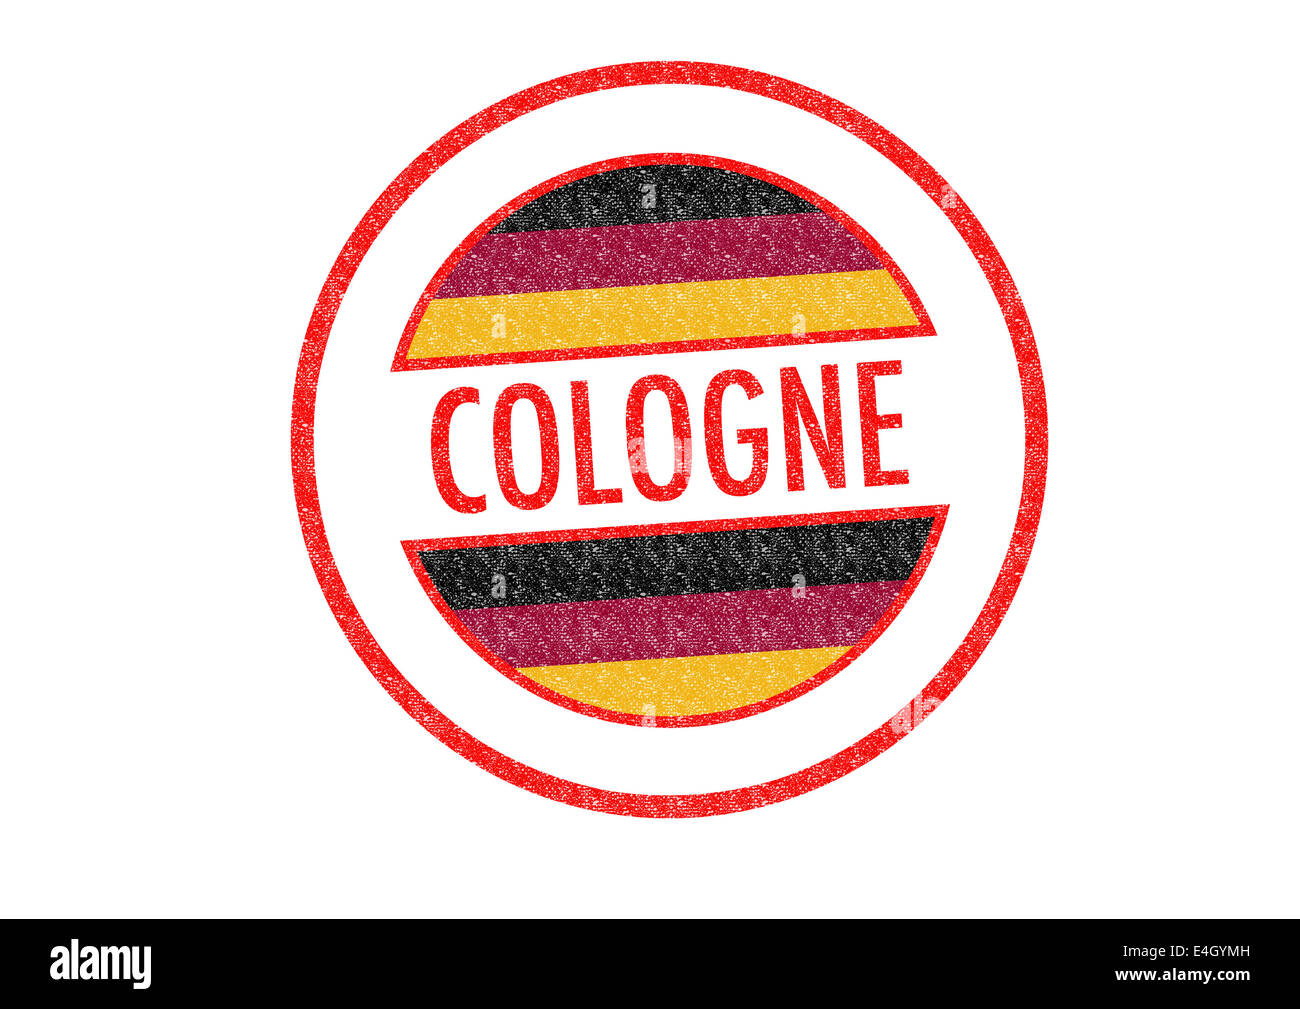 Passport-style COLOGNE rubber stamp over a white background. - Stock Image